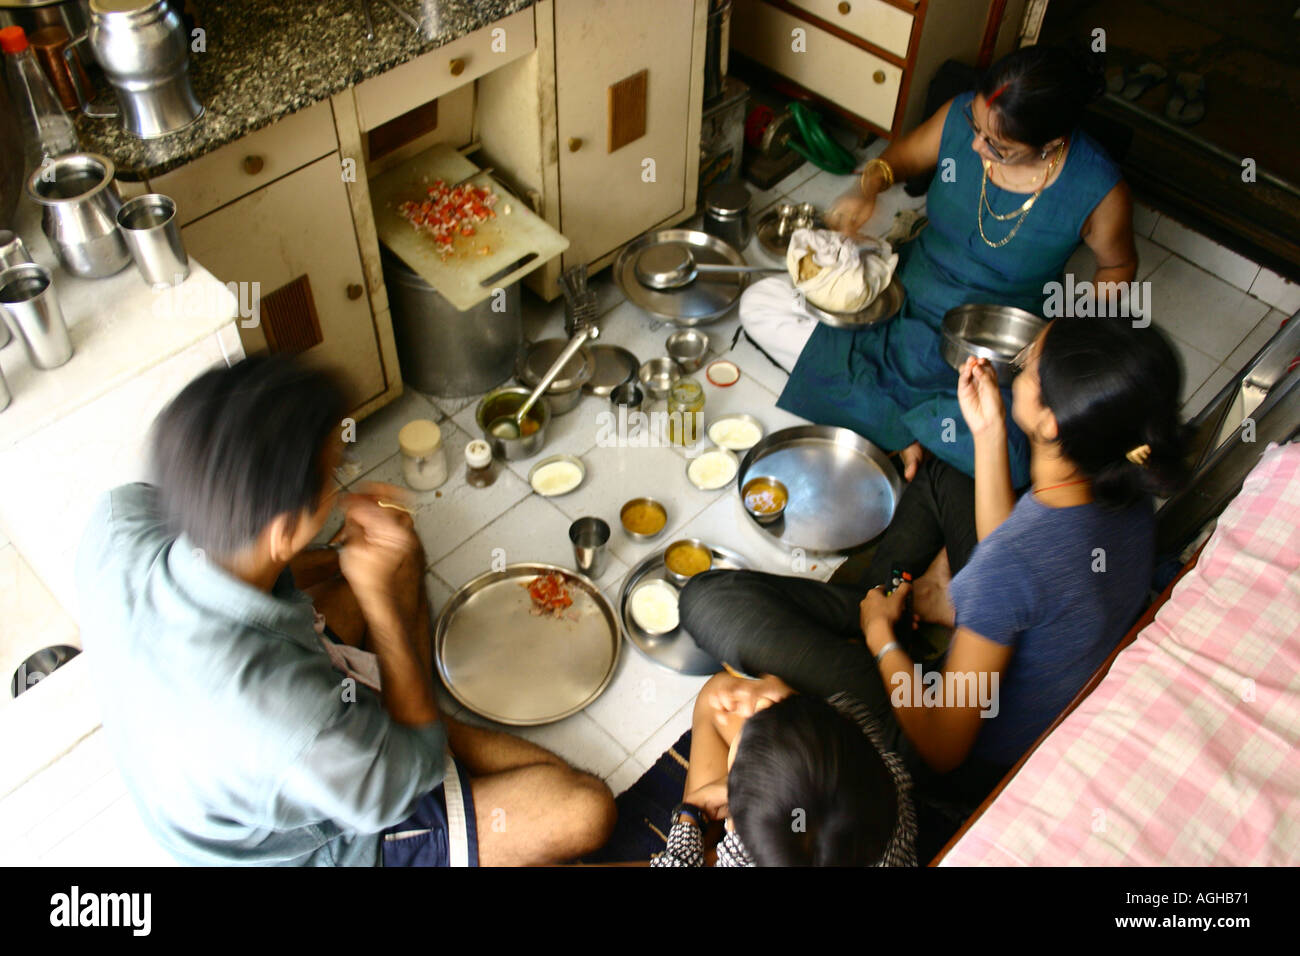 Poor People Food Eating High Resolution Stock Photography And Images Alamy